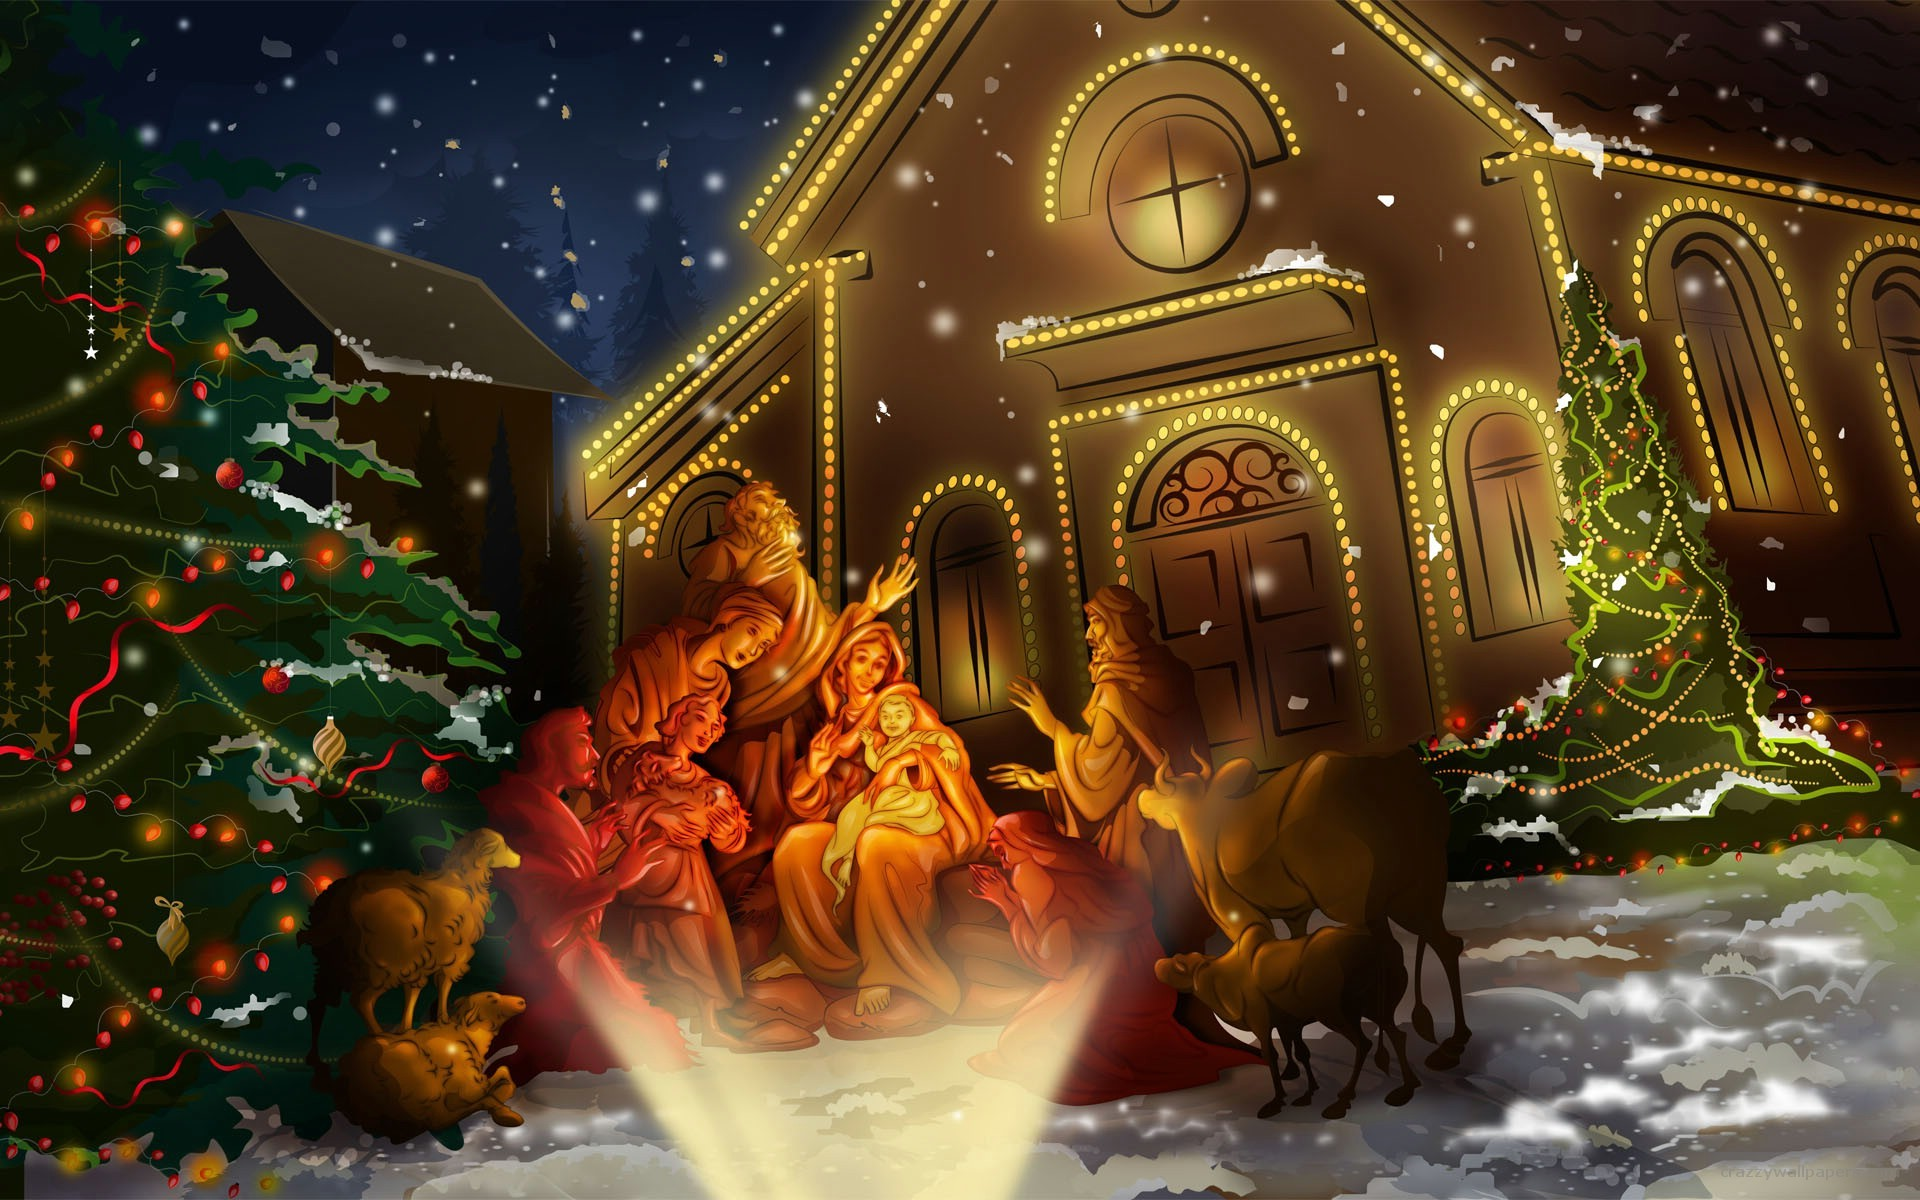 Xmas wallpaper  Download free awesome wallpapers for desktop